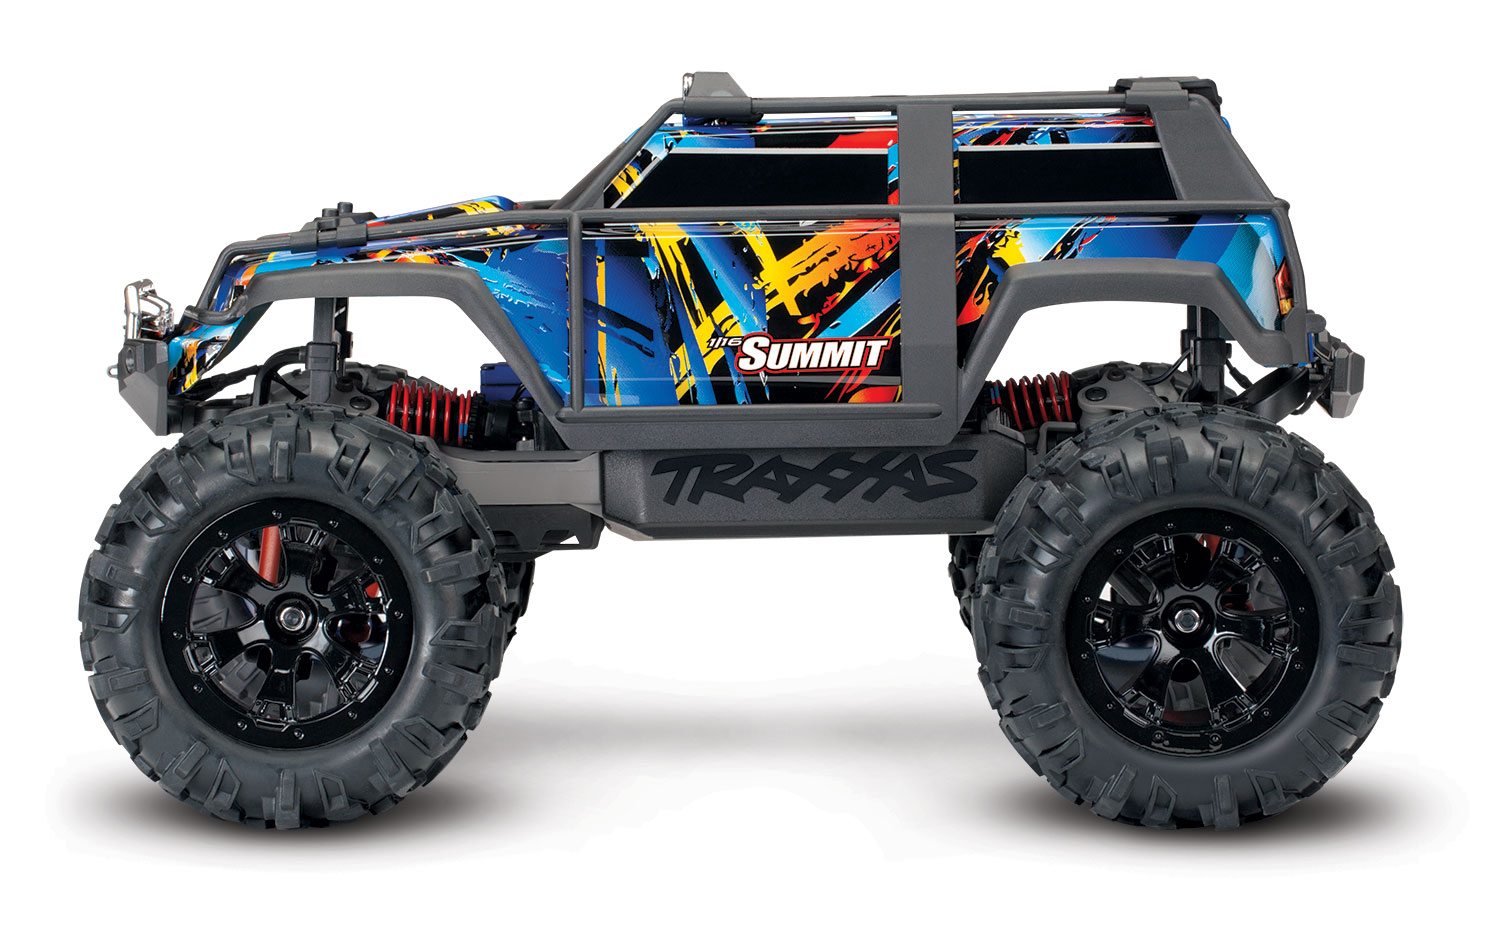 Traxxas Summit 1/16 Scale 4WD Extreme Terrain Monster Truck - RTR